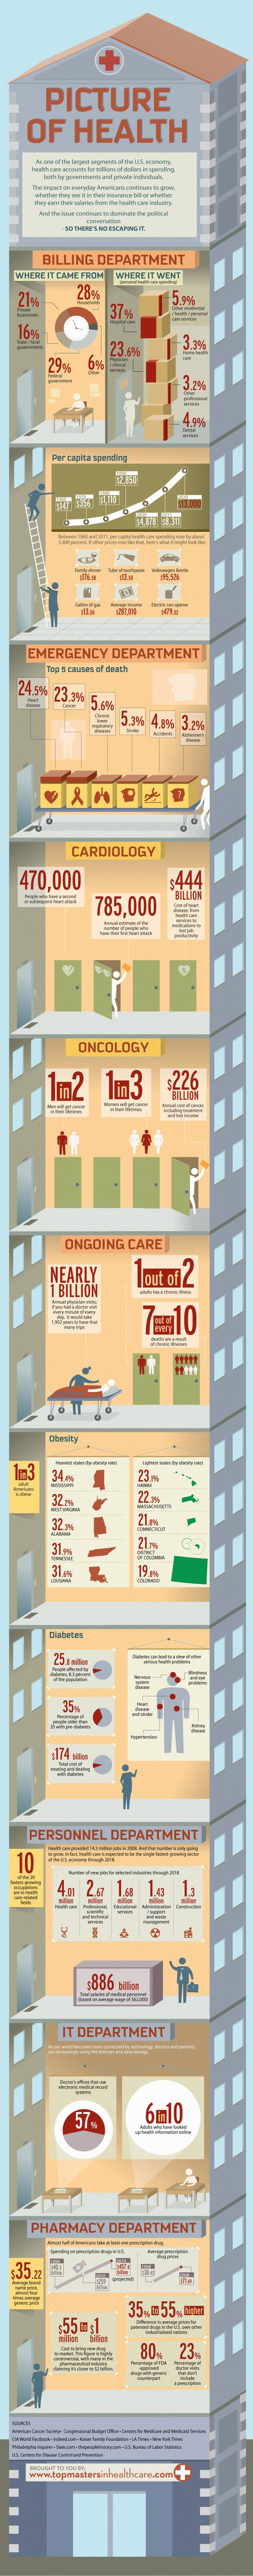 Picture of health: Healthcare in America [infographic]